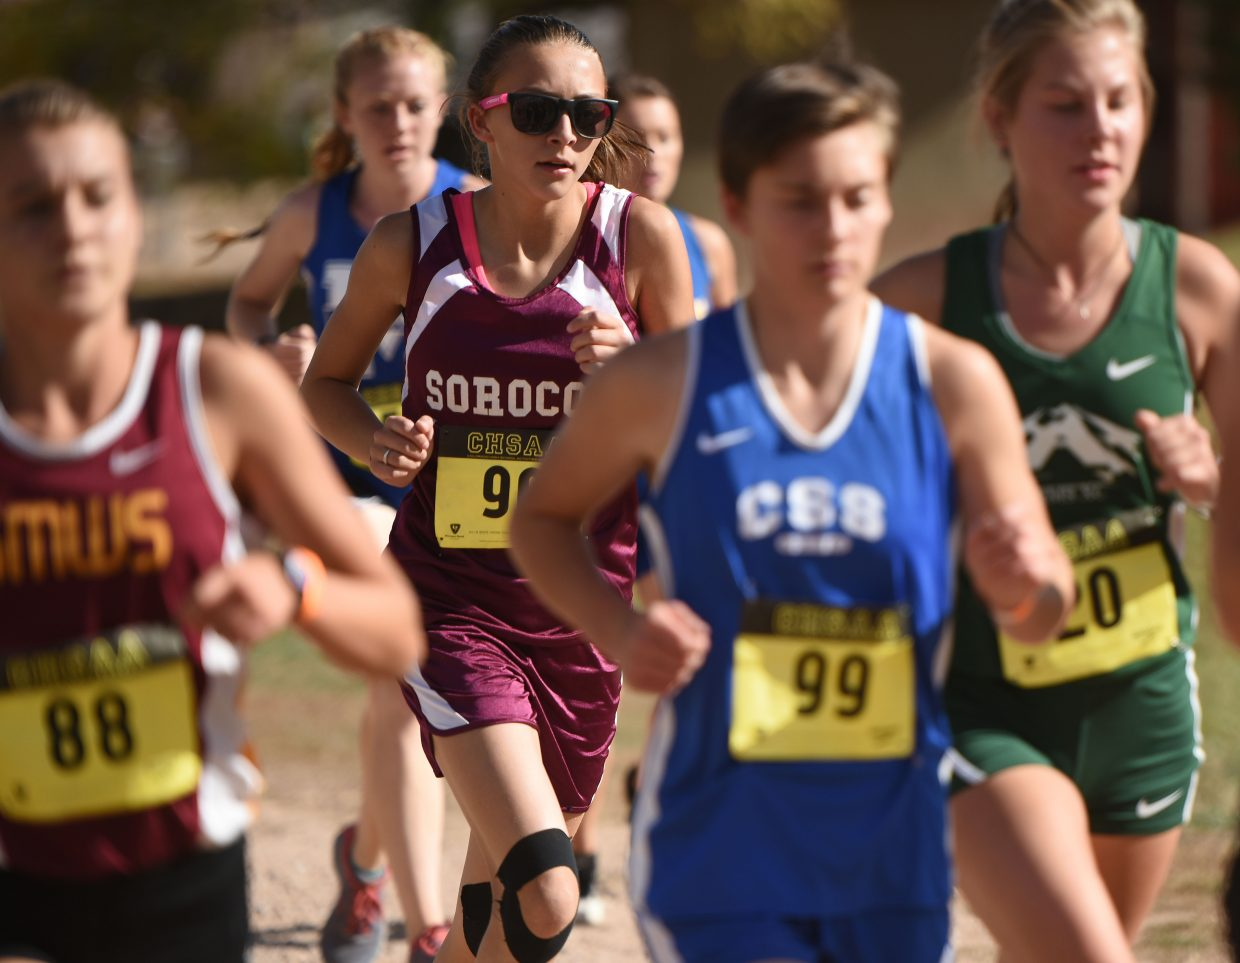 Soroco freshman Kourtney Bruner runs in the pack Saturday at the state cross country meet in Colorado Springs.